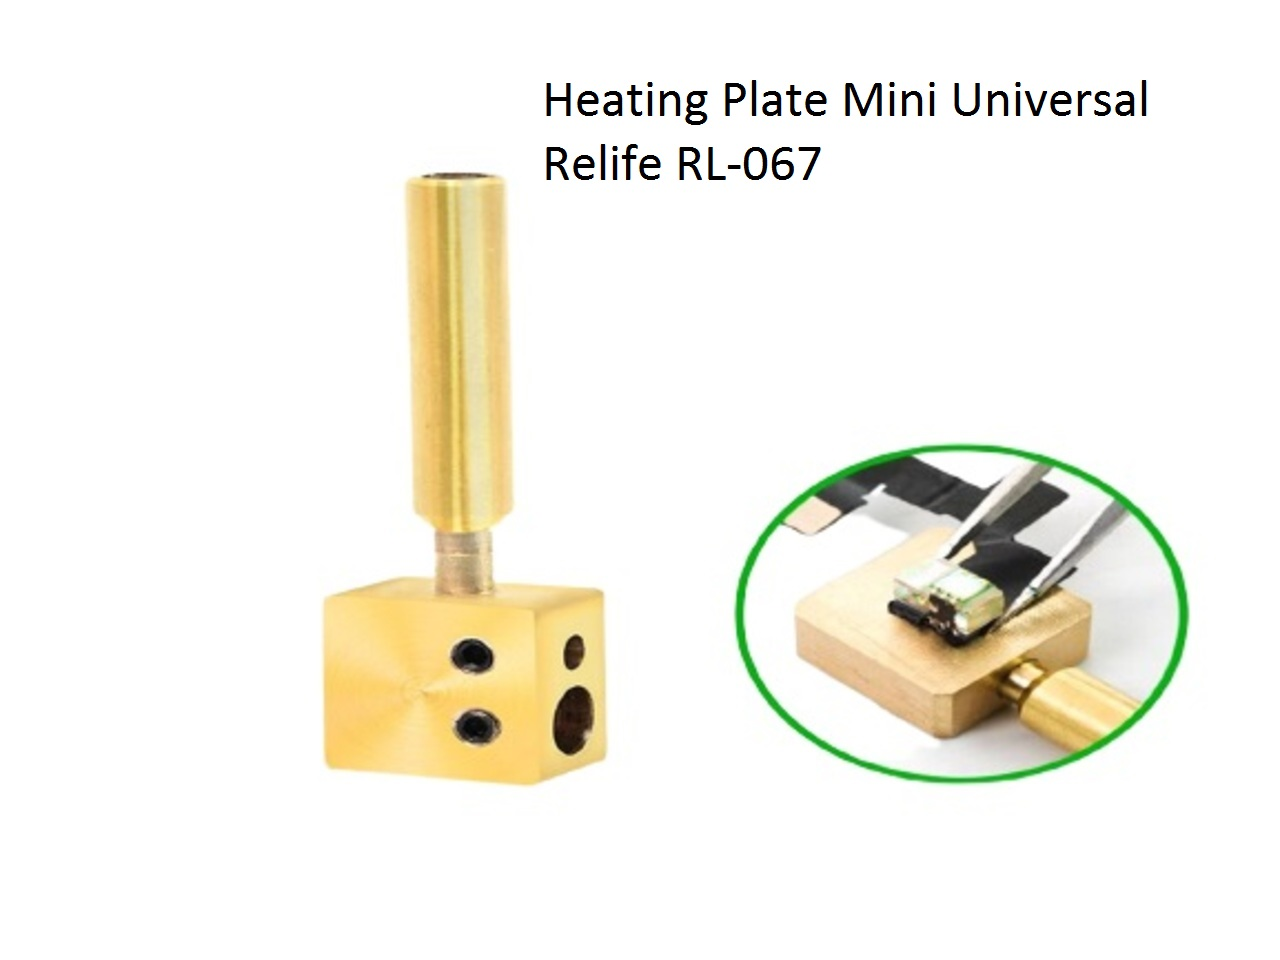 HEATING-PLATE-MINI-UNIVERSAL-RELIFE-RL-067-3IN1